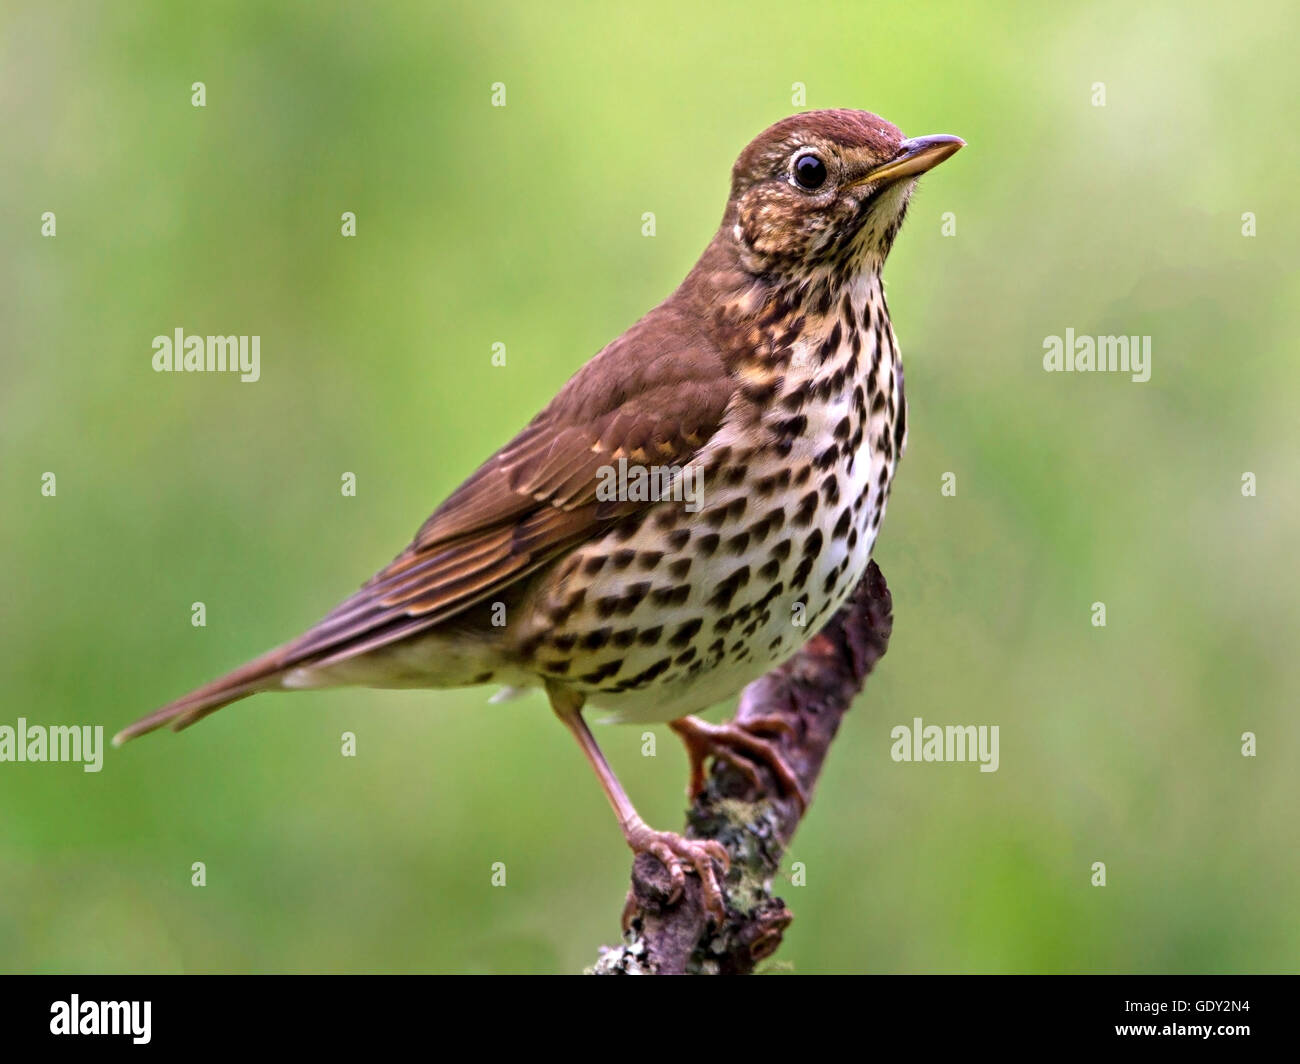 Song thrush perched on branch - Stock Image